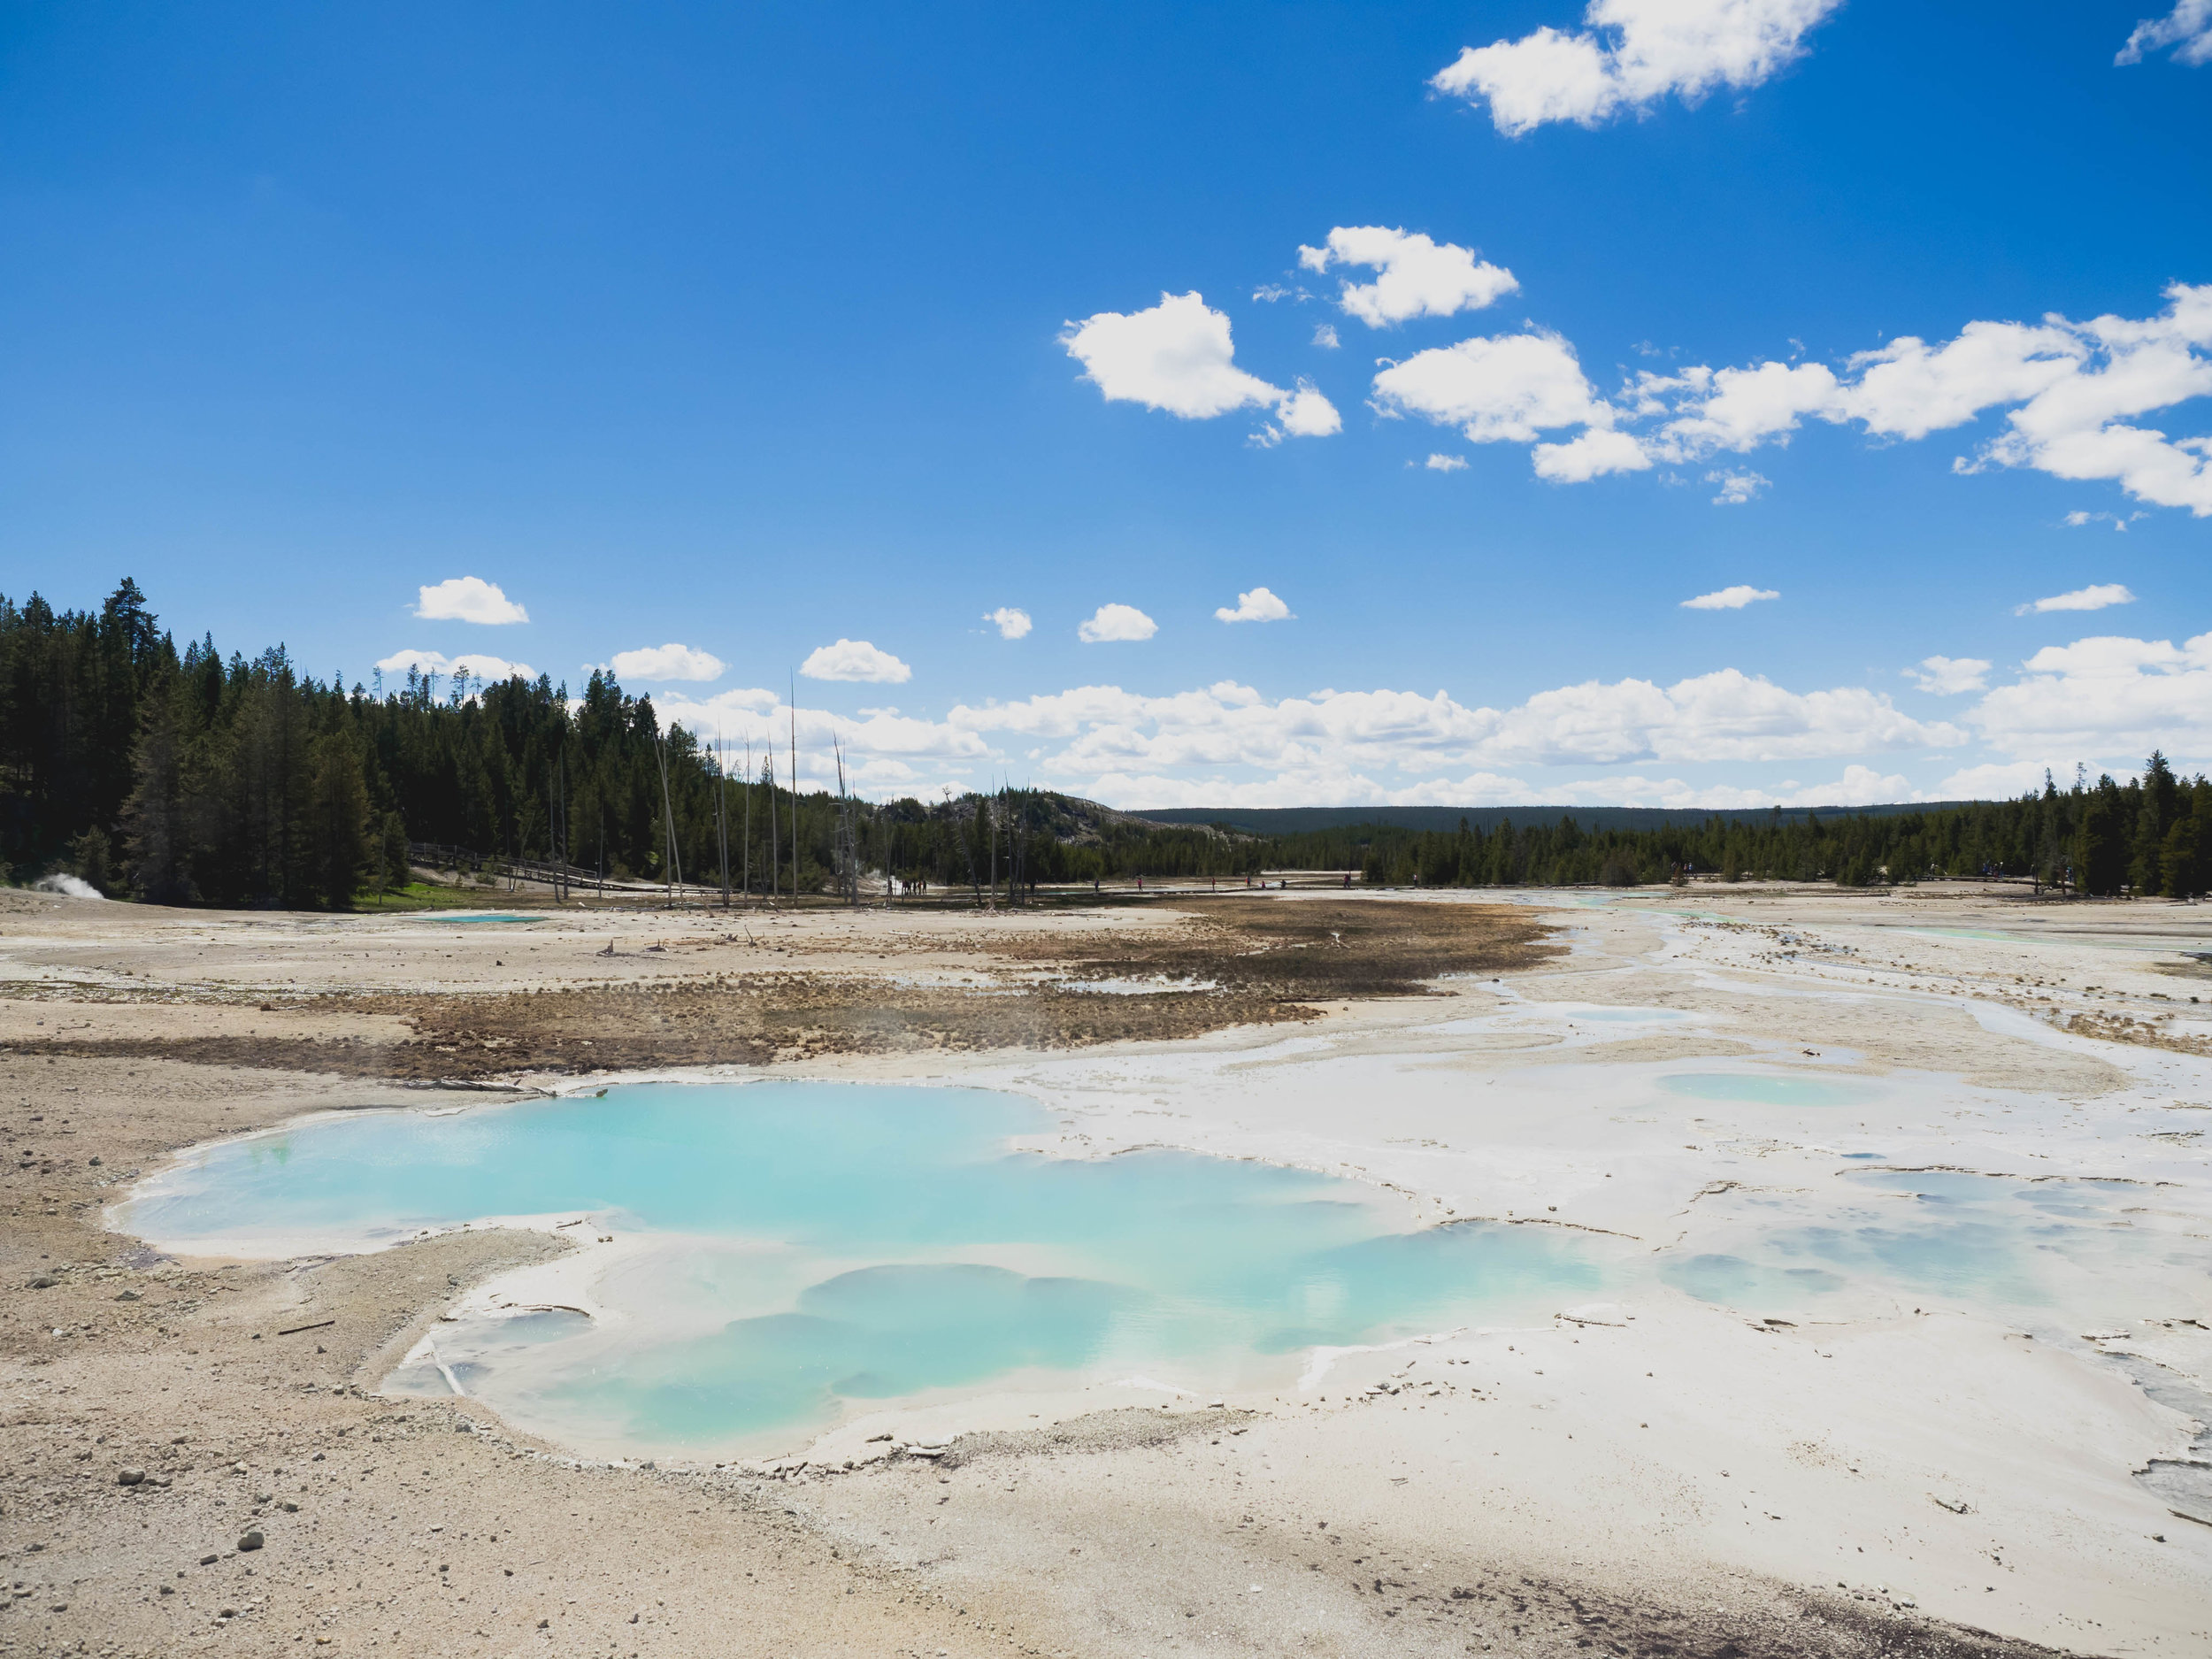 yellowstone's geothermal features.